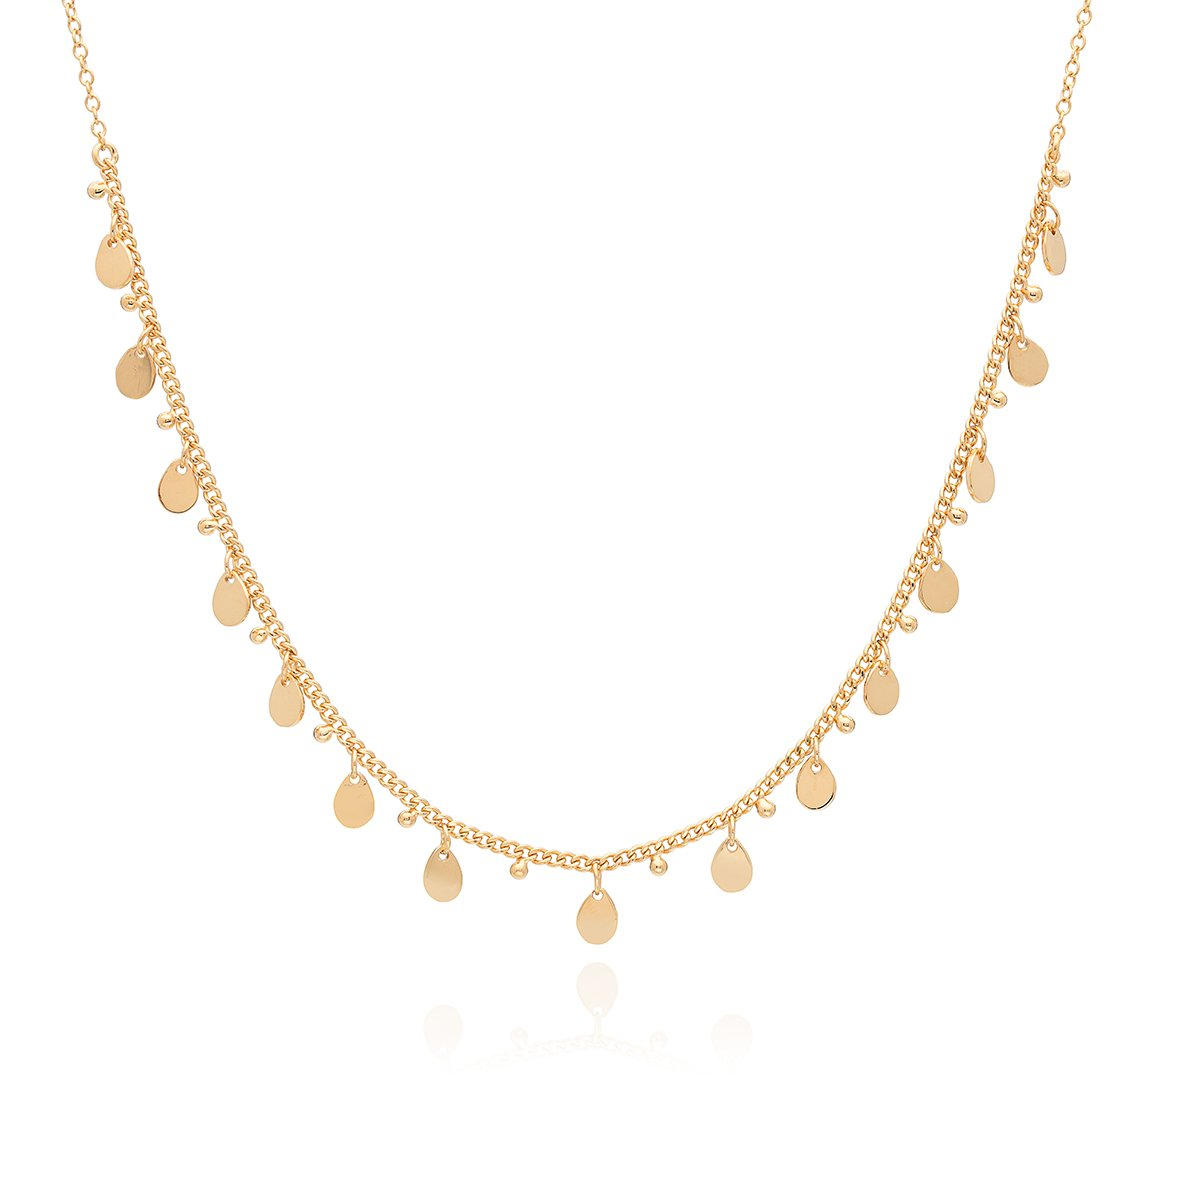 Anna Beck Necklace Charm Collar 0121N-GLD